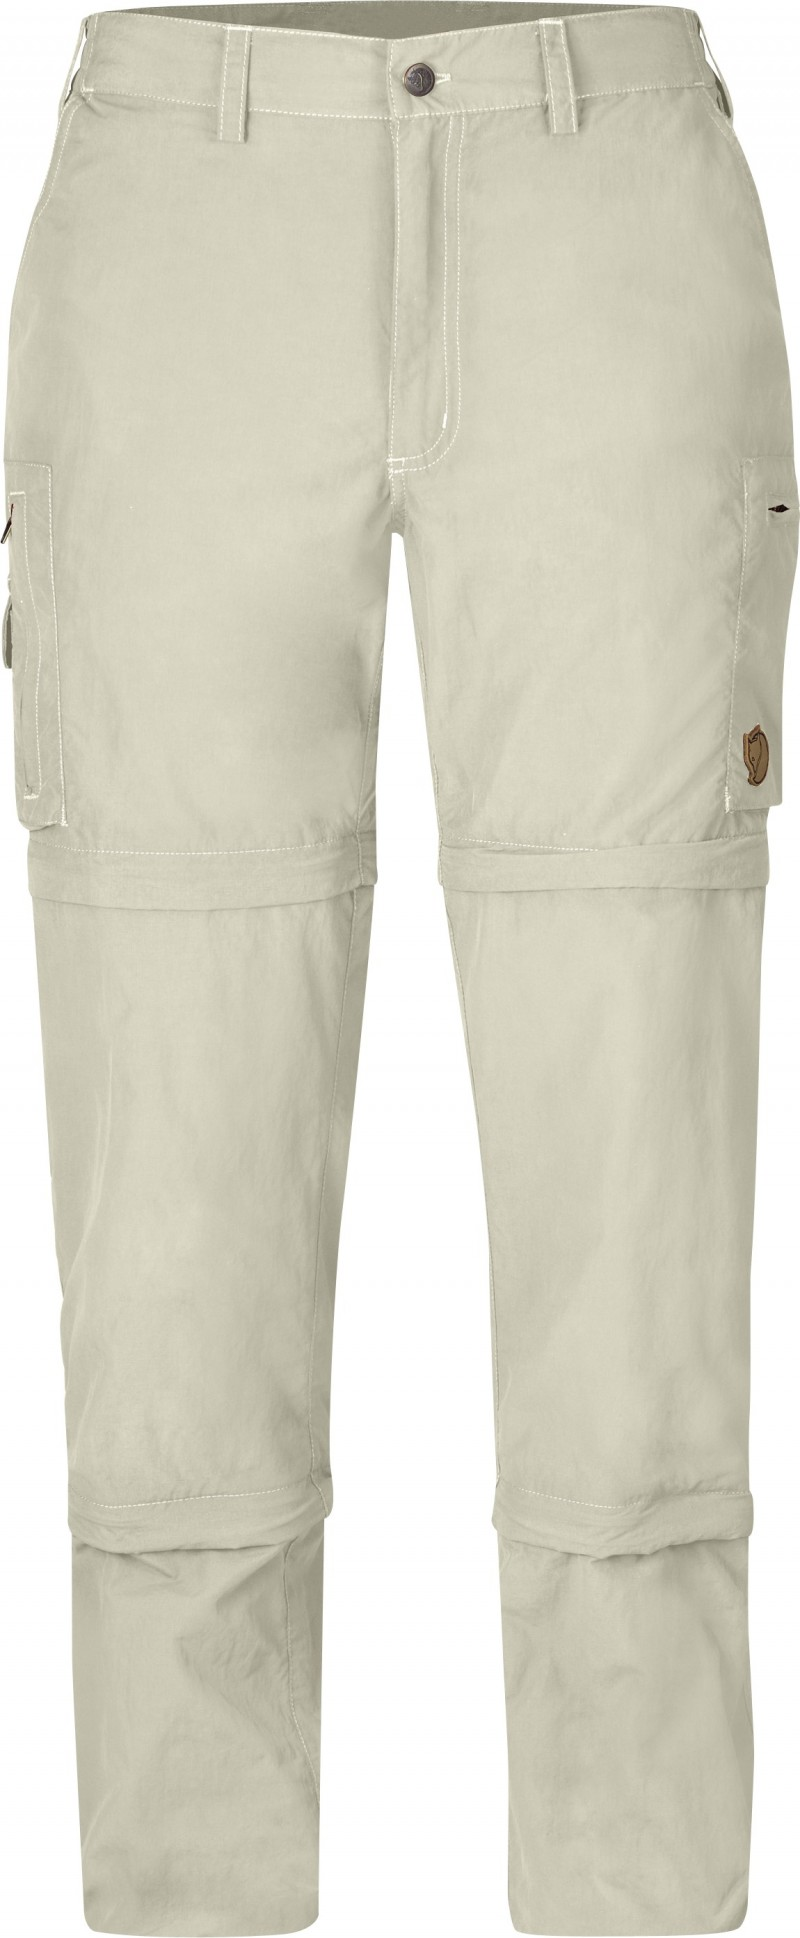 FjallRaven Sipora MT Trousers W. 48 Light Beige-30